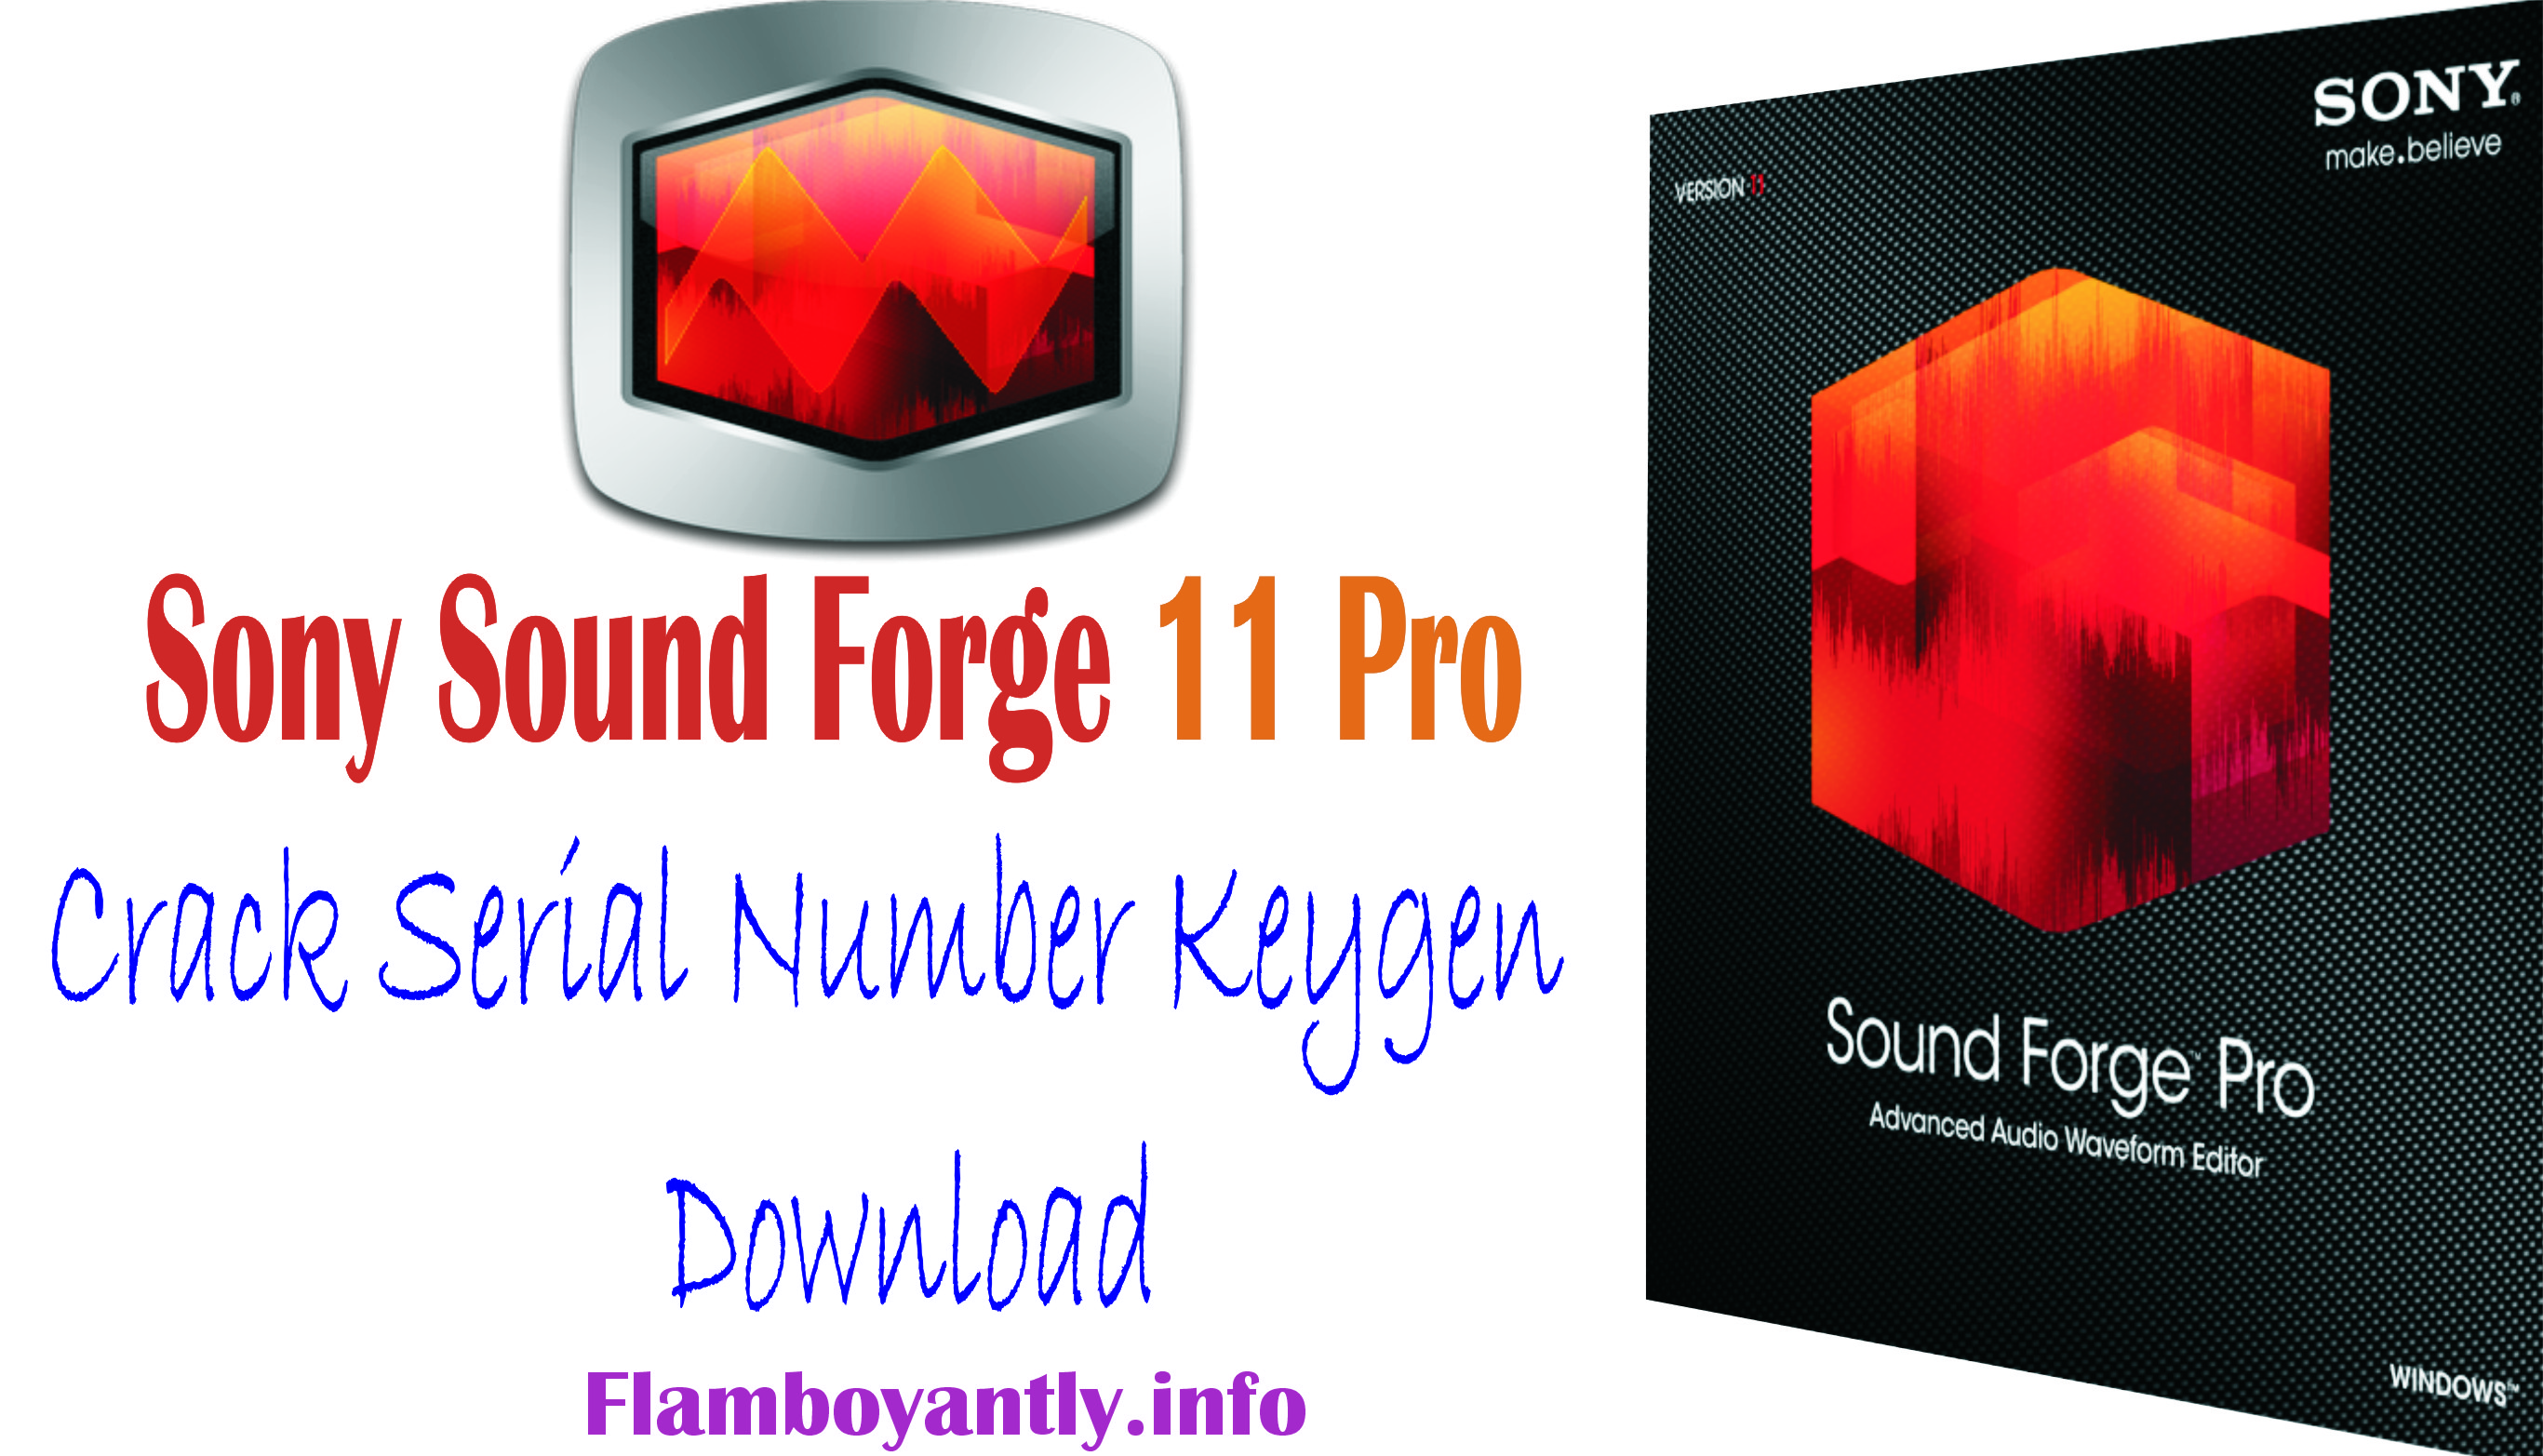 Sony Sound Forge 11 Pro Crack Serial Number Keygen Download